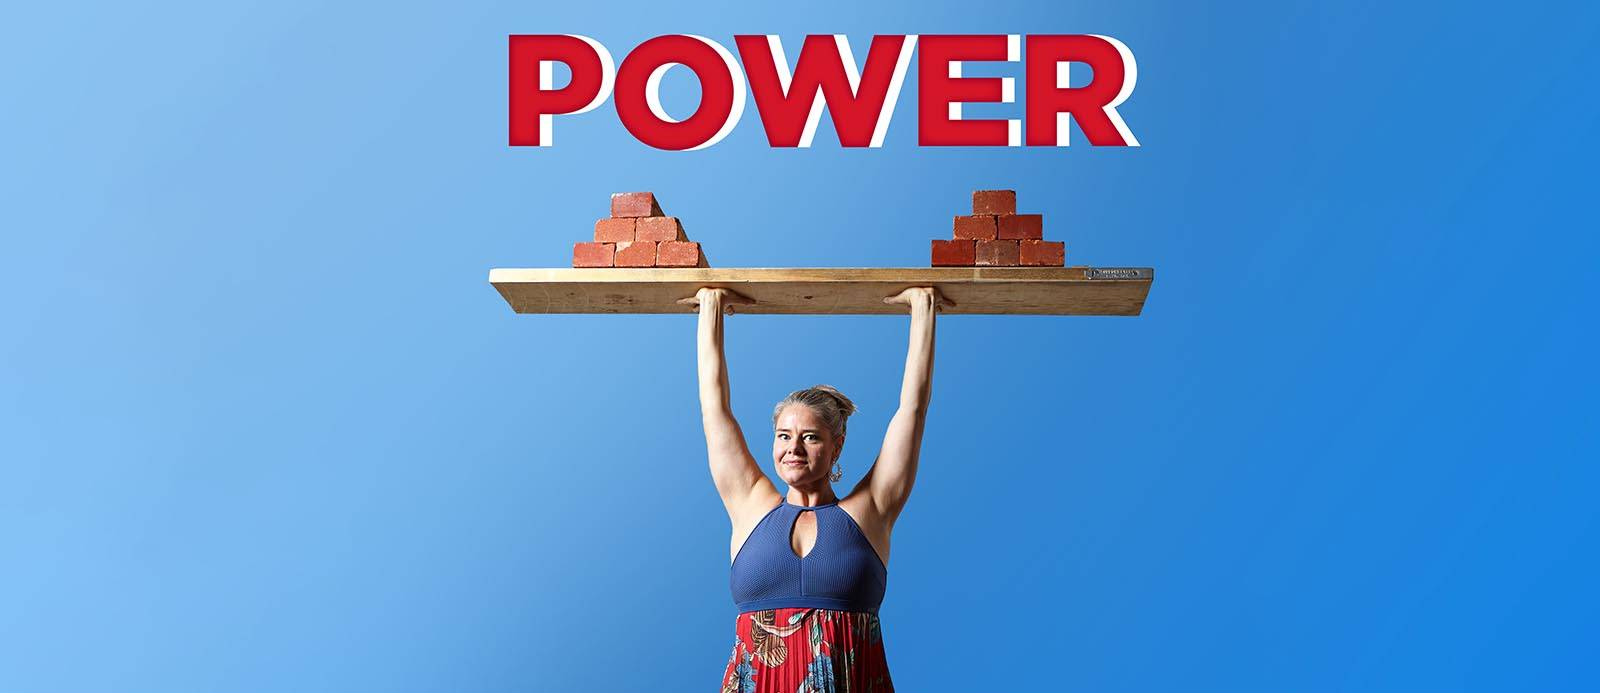 female weightlifter smiles while holding a plank piled with bricks